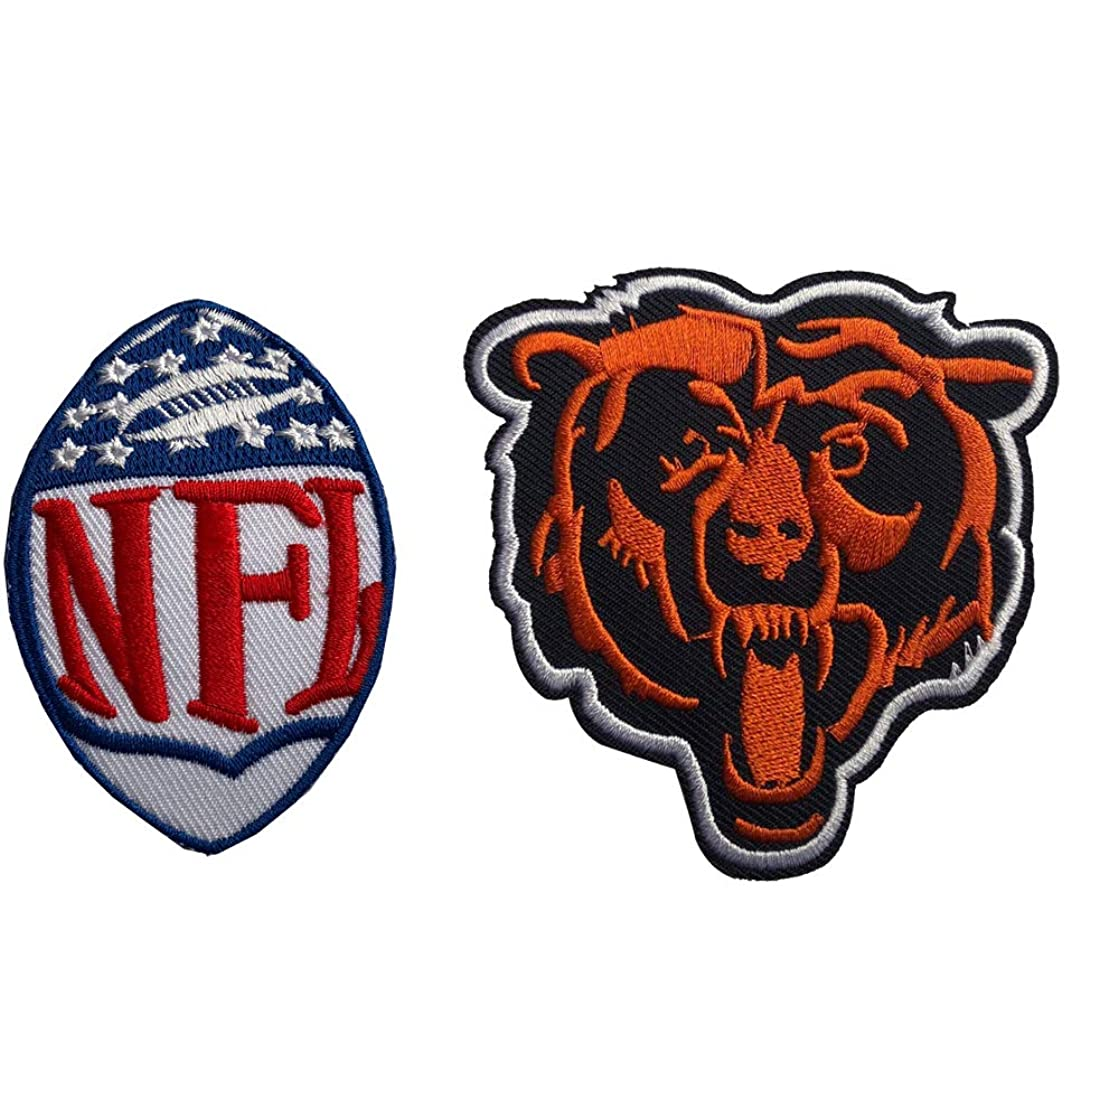 Hipatch Chicago Bears Embroidered Patch Iron on Logo Vest Jacket Cap Hoodie Backpack Patch Iron On/sew on Patch Set of 2Pcs